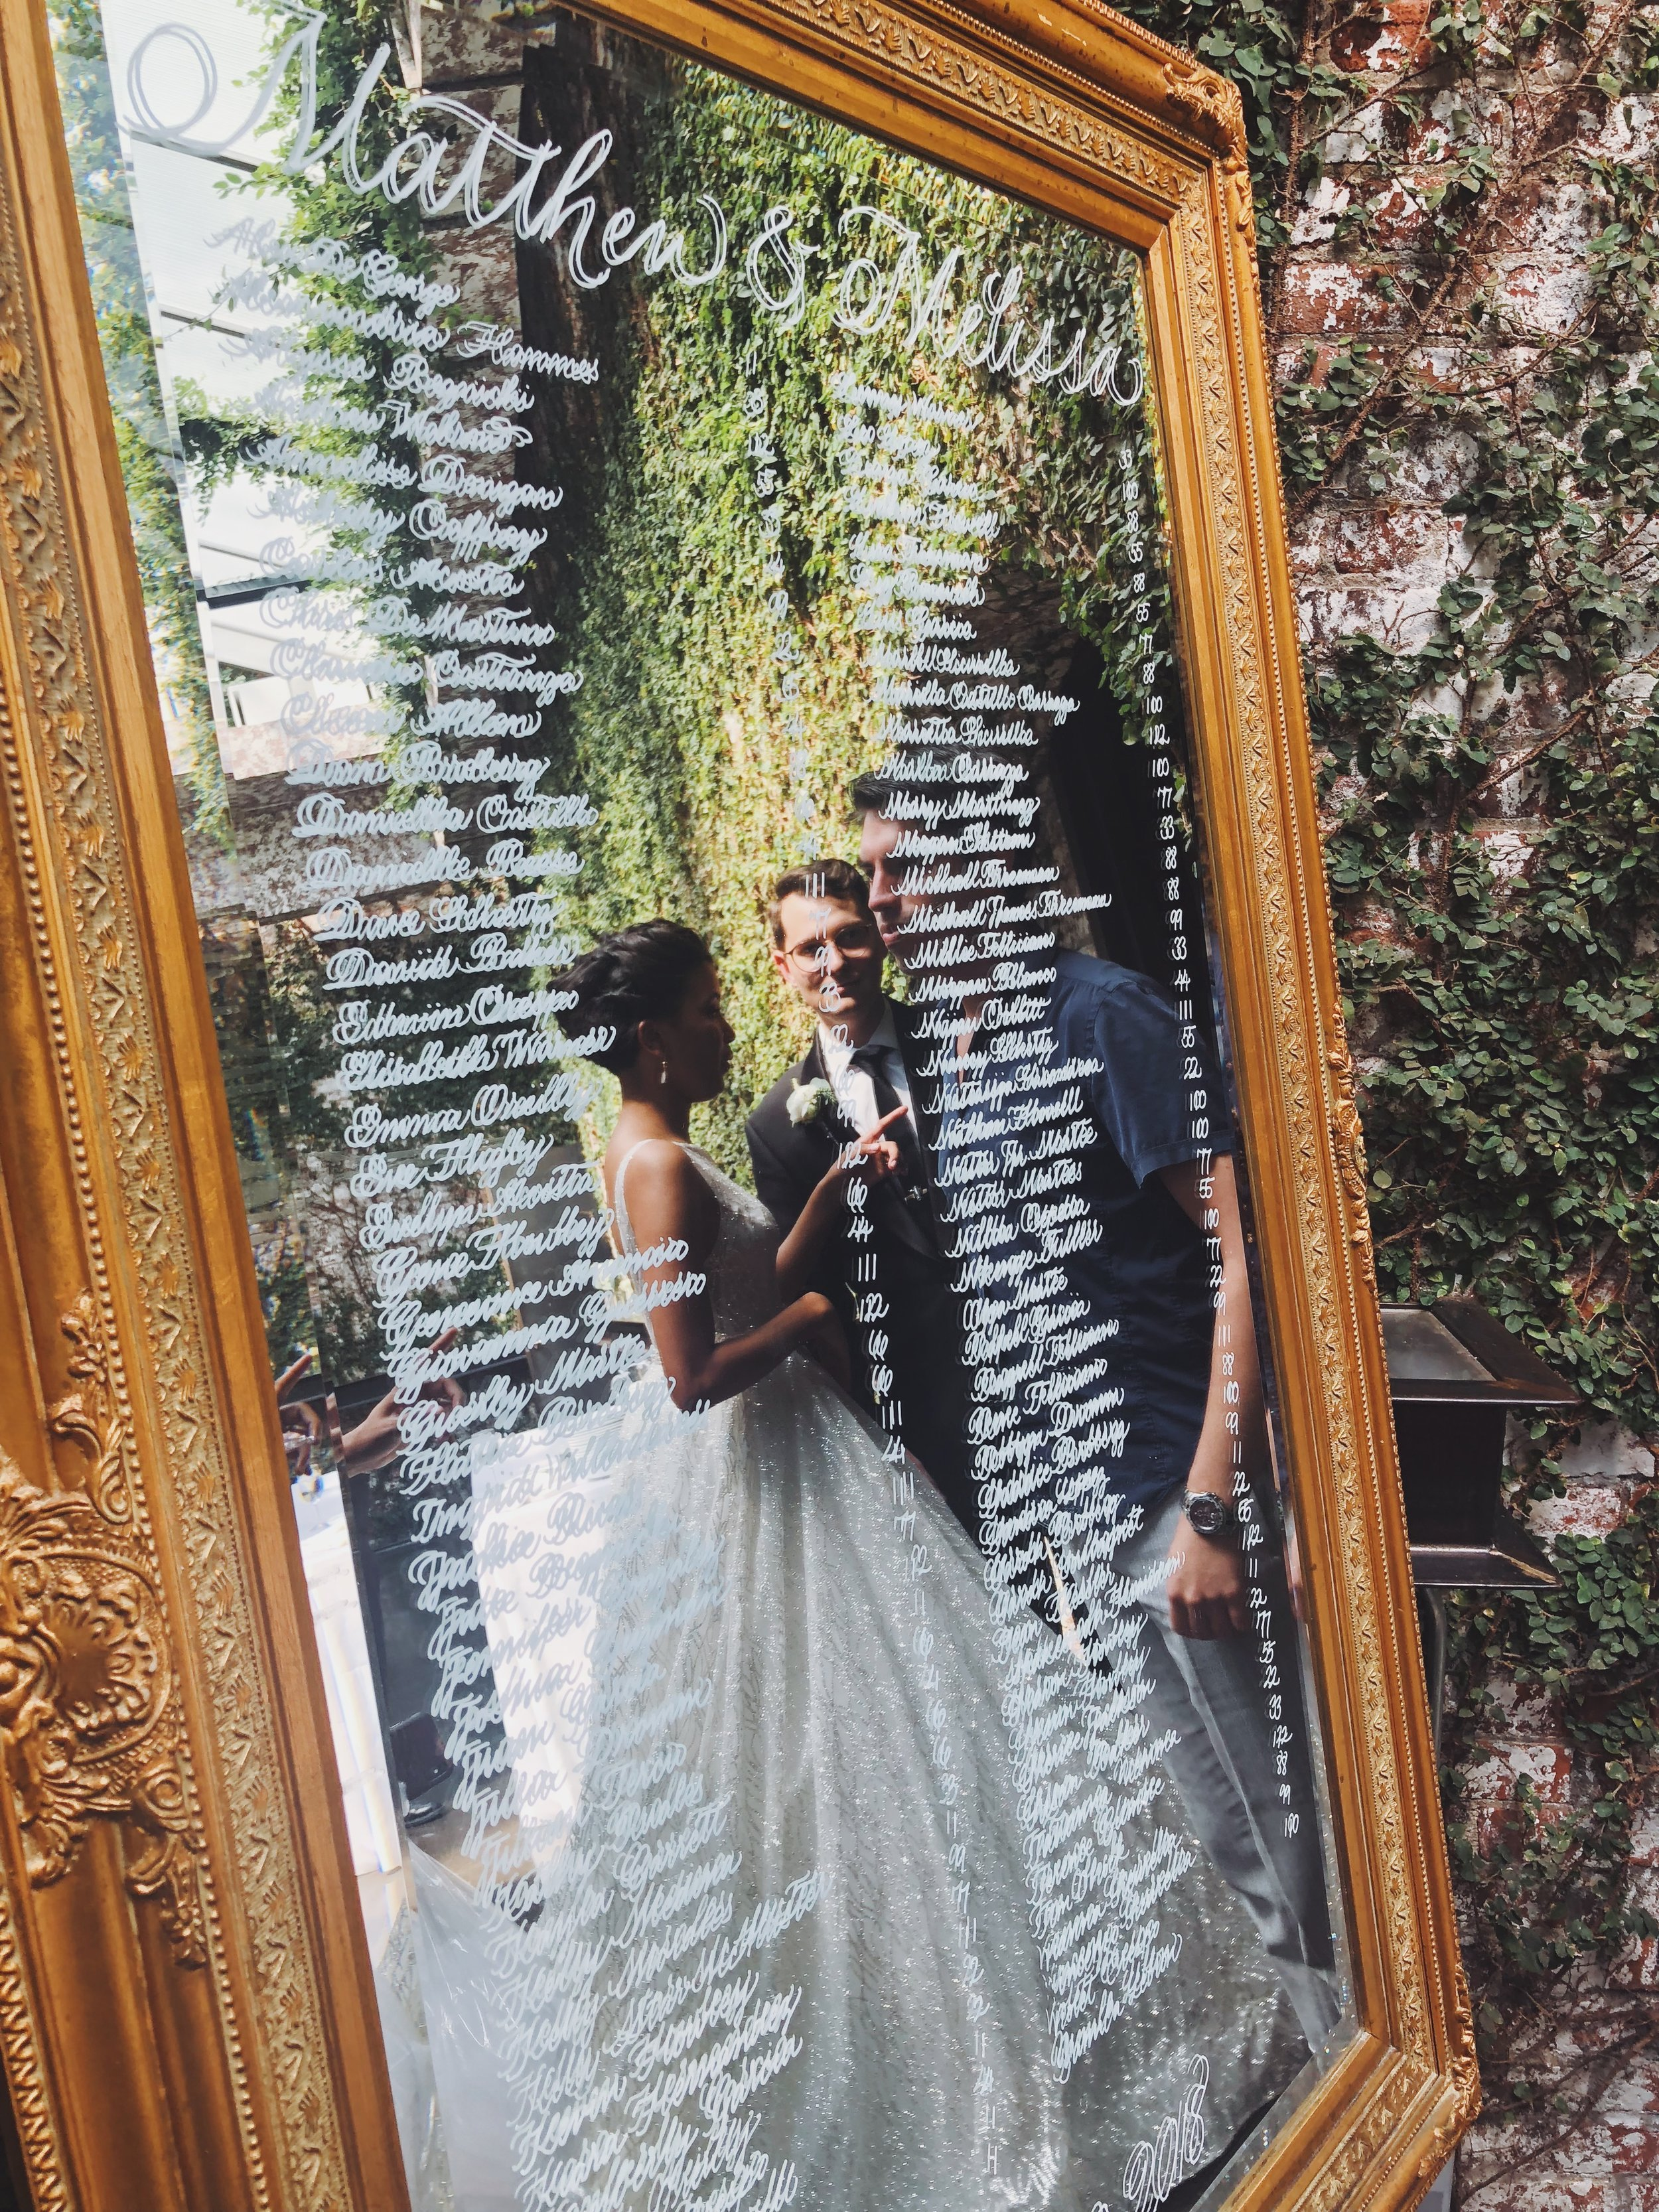 Wedding seating chart mirror with calligraphy   by www.chavelli.com